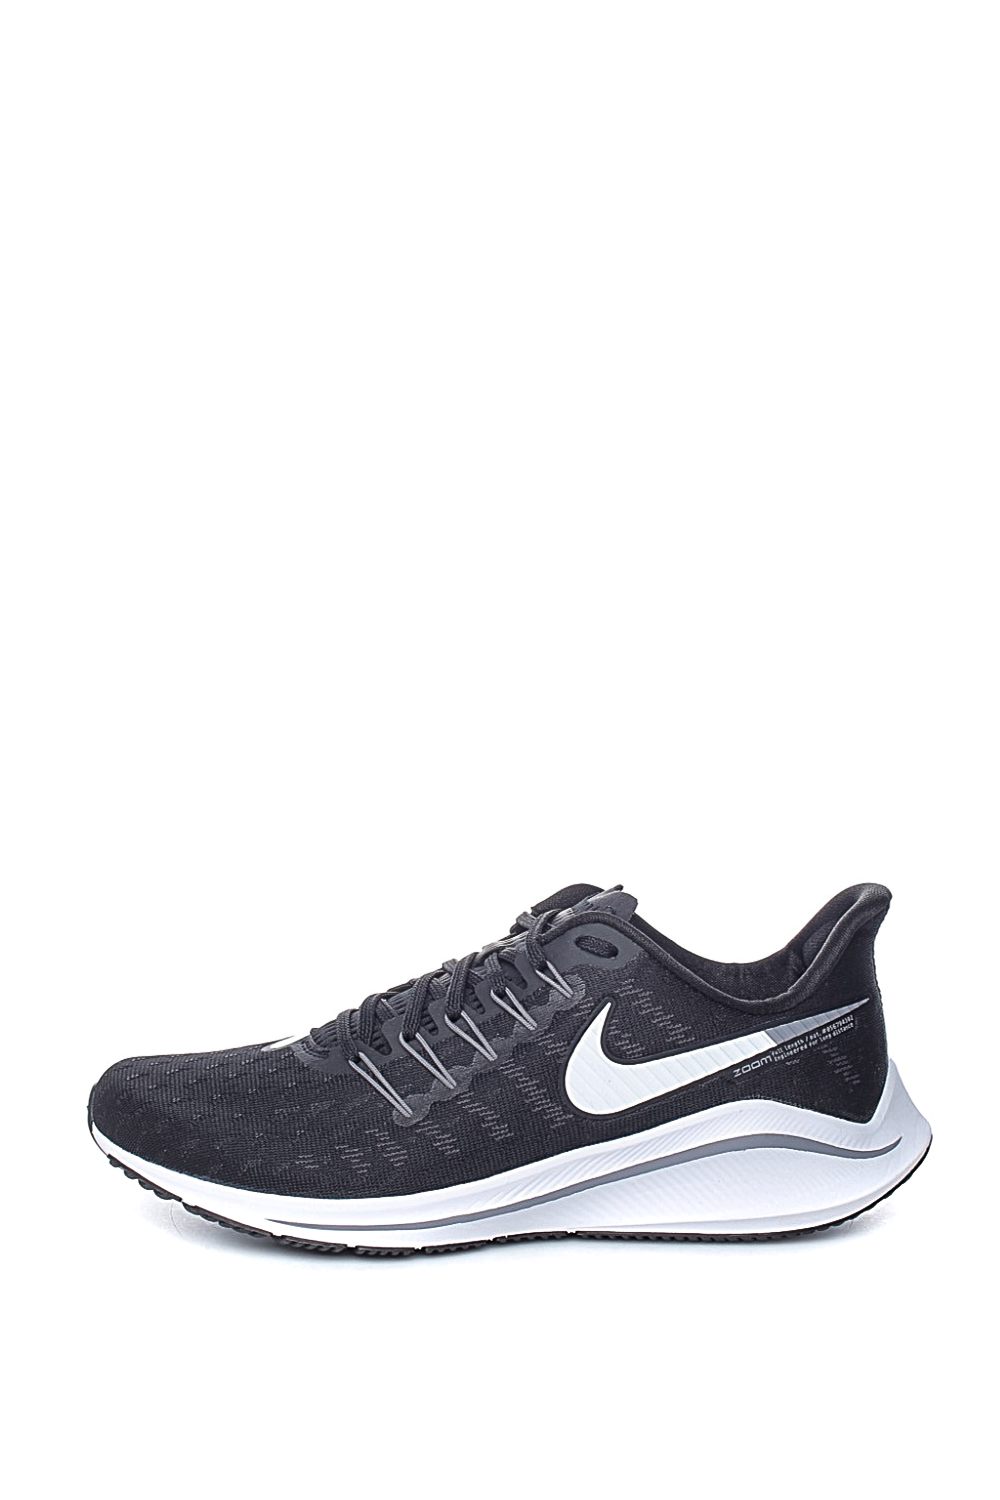 size 40 1eb34 cde43 Collective Online NIKE – Ανδρικά running παπούτσια NIKE AIR ZOOM VOMERO 14  μαύρα